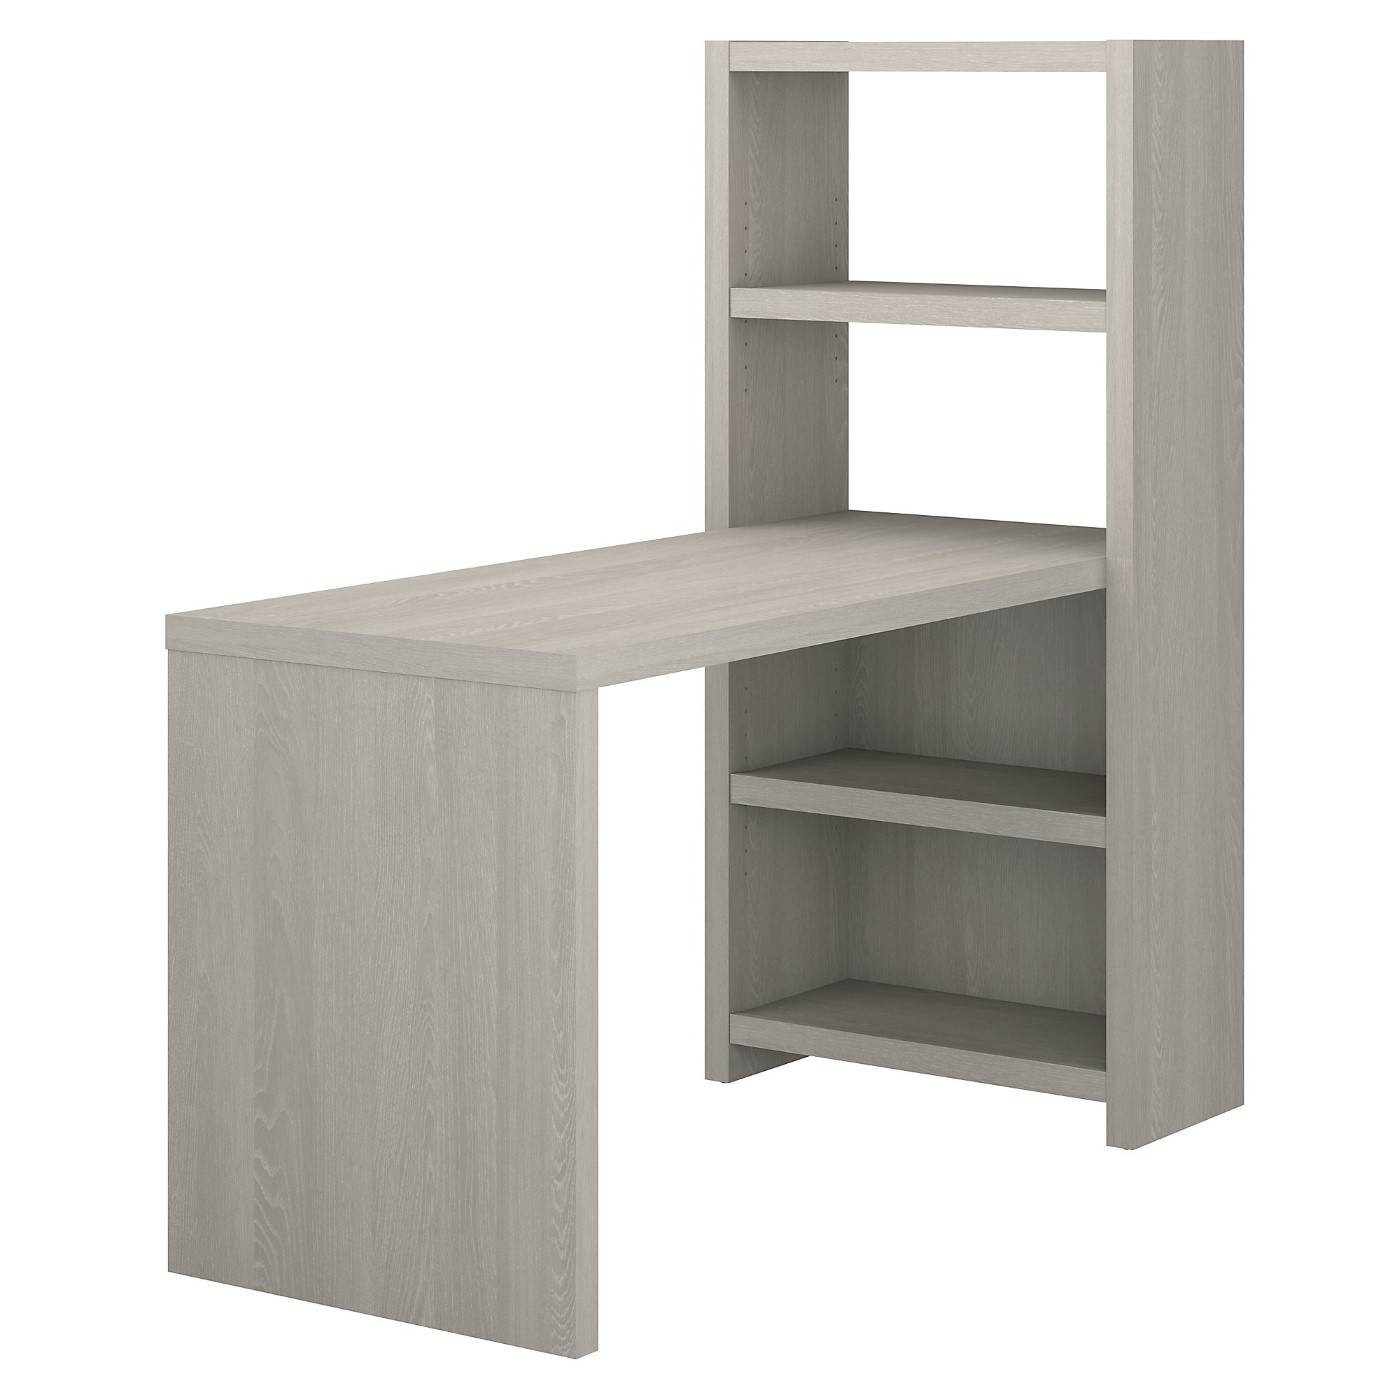 The kathy ireland� Echo 56W Craft Table is Sustainable Eco Friendly Furniture. Includes Free Shipping! 30H x 72L x 72W.